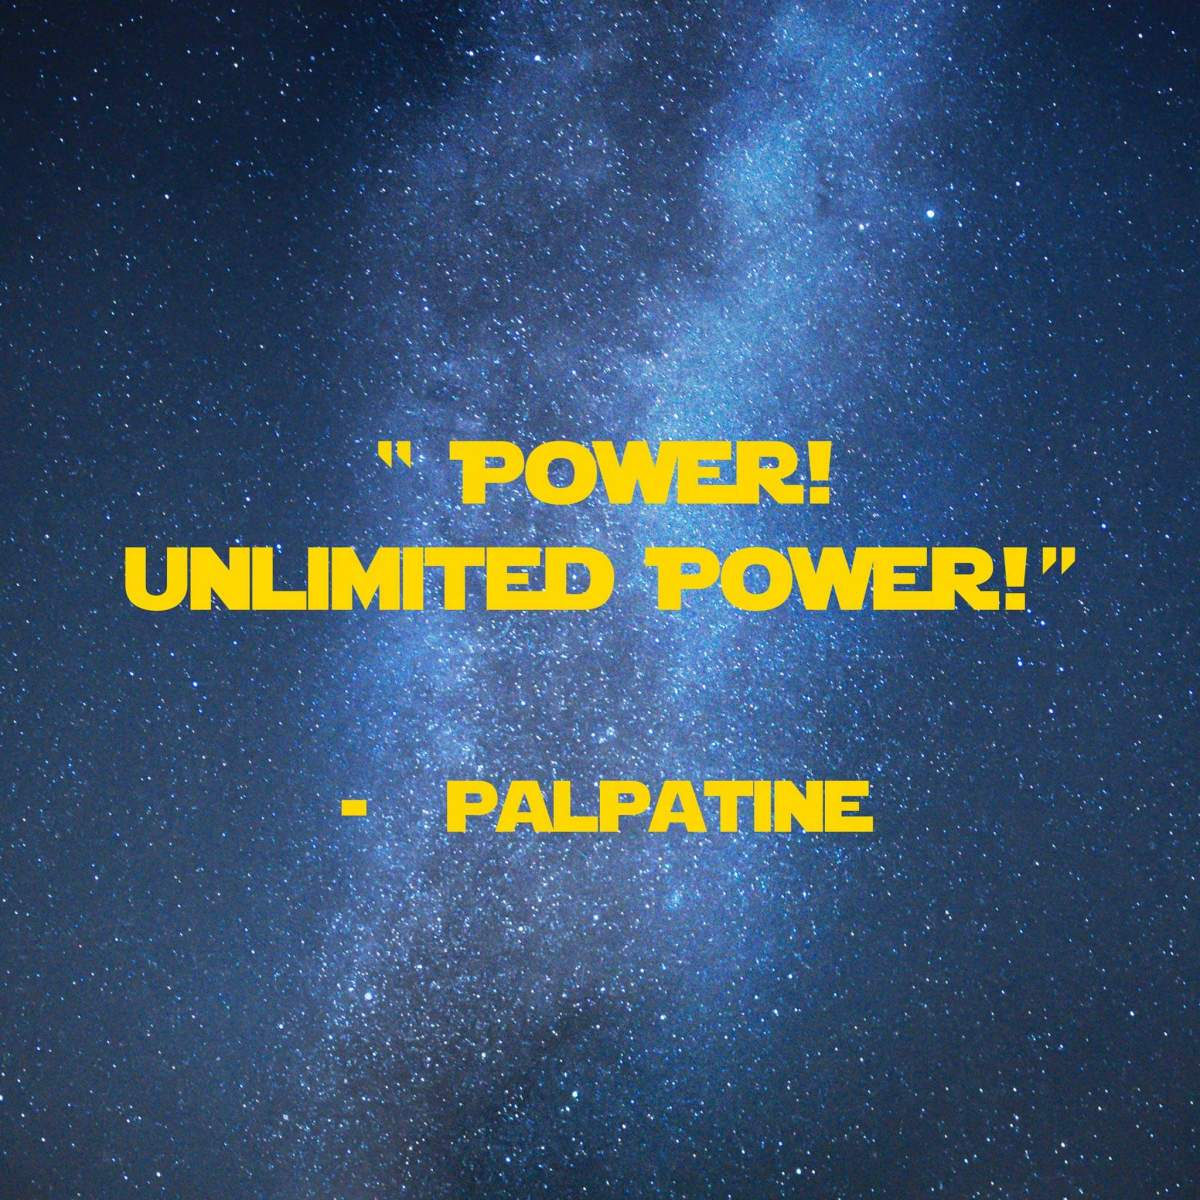 Power! Unlimited Power! | 31 Memorable Star Wars Quotes for Geeks